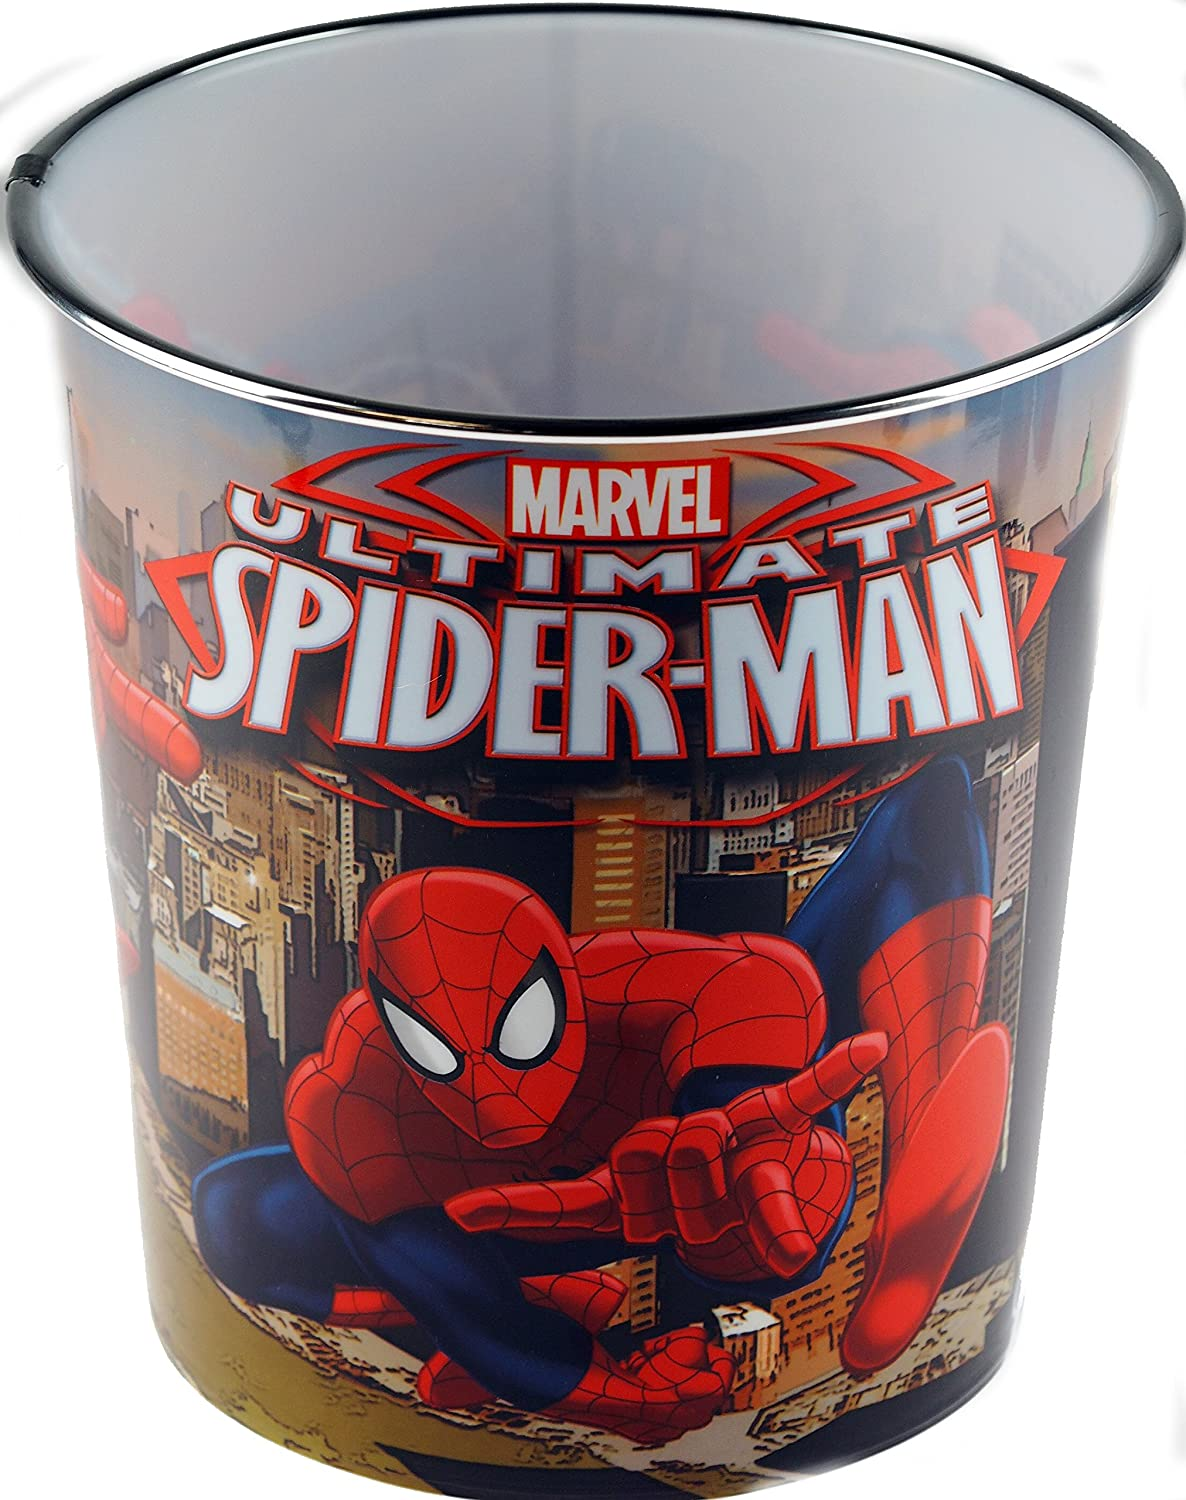 Marvel Spiderman Children's Bedroom Waste Paper Bin - NEW Skyline